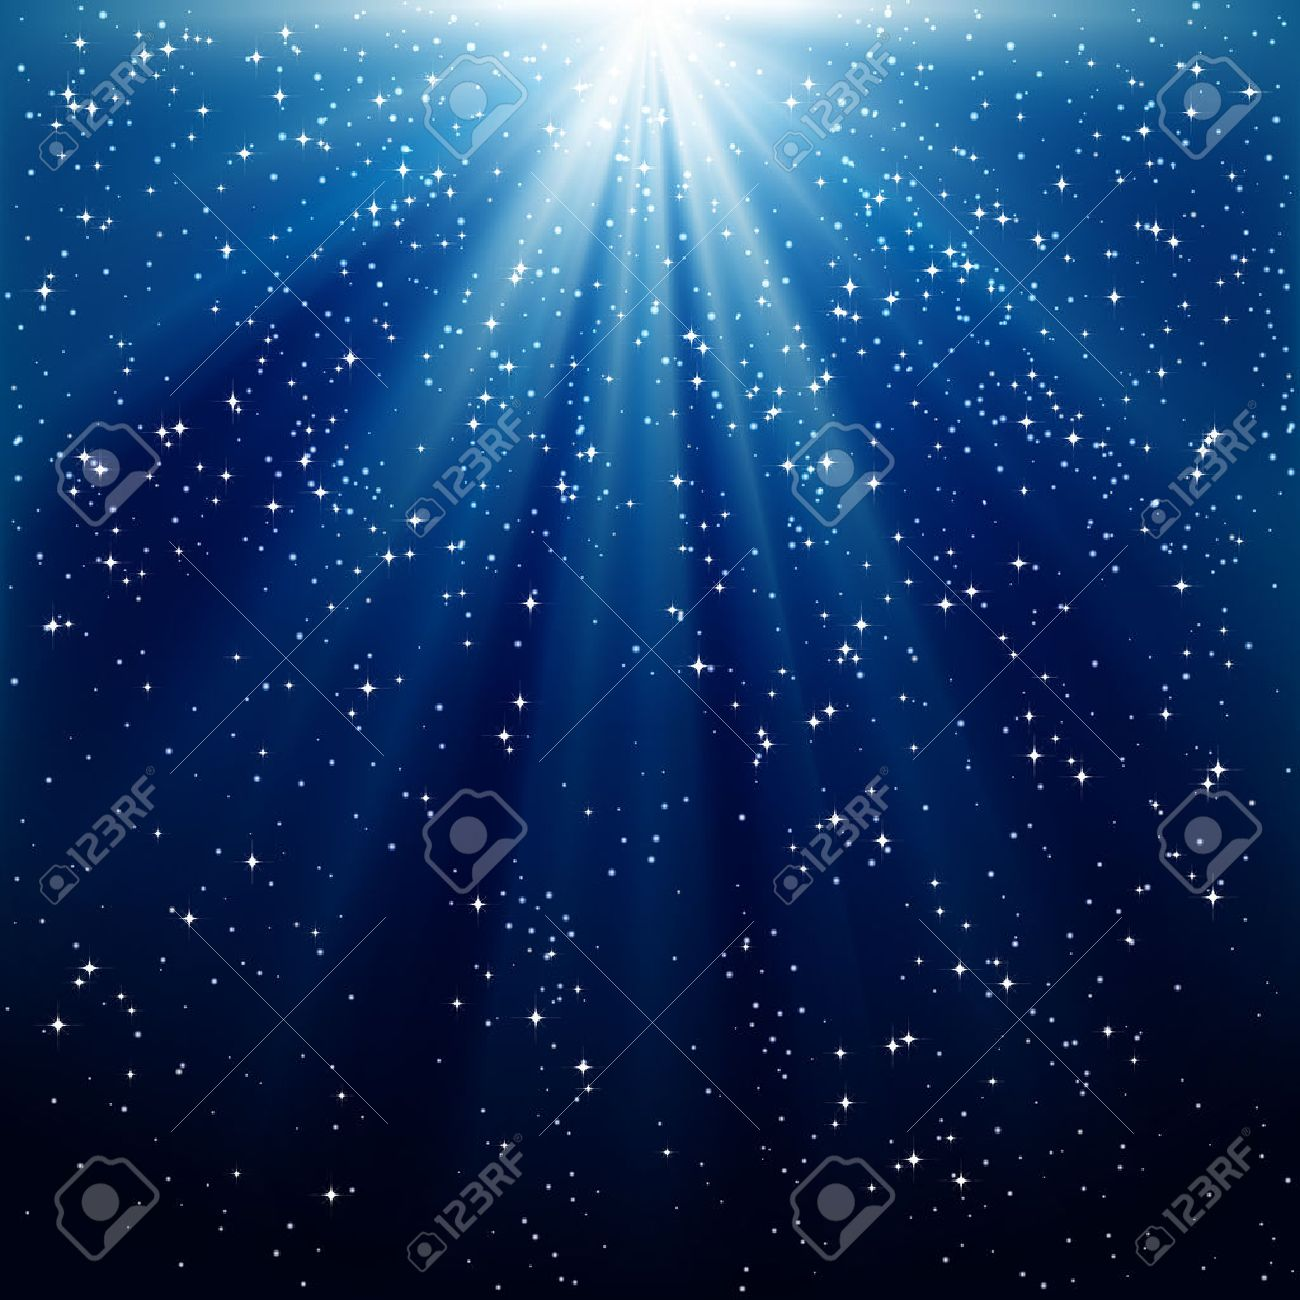 Snow and stars are falling on the background of blue luminous rays Stock Vector - 8353073